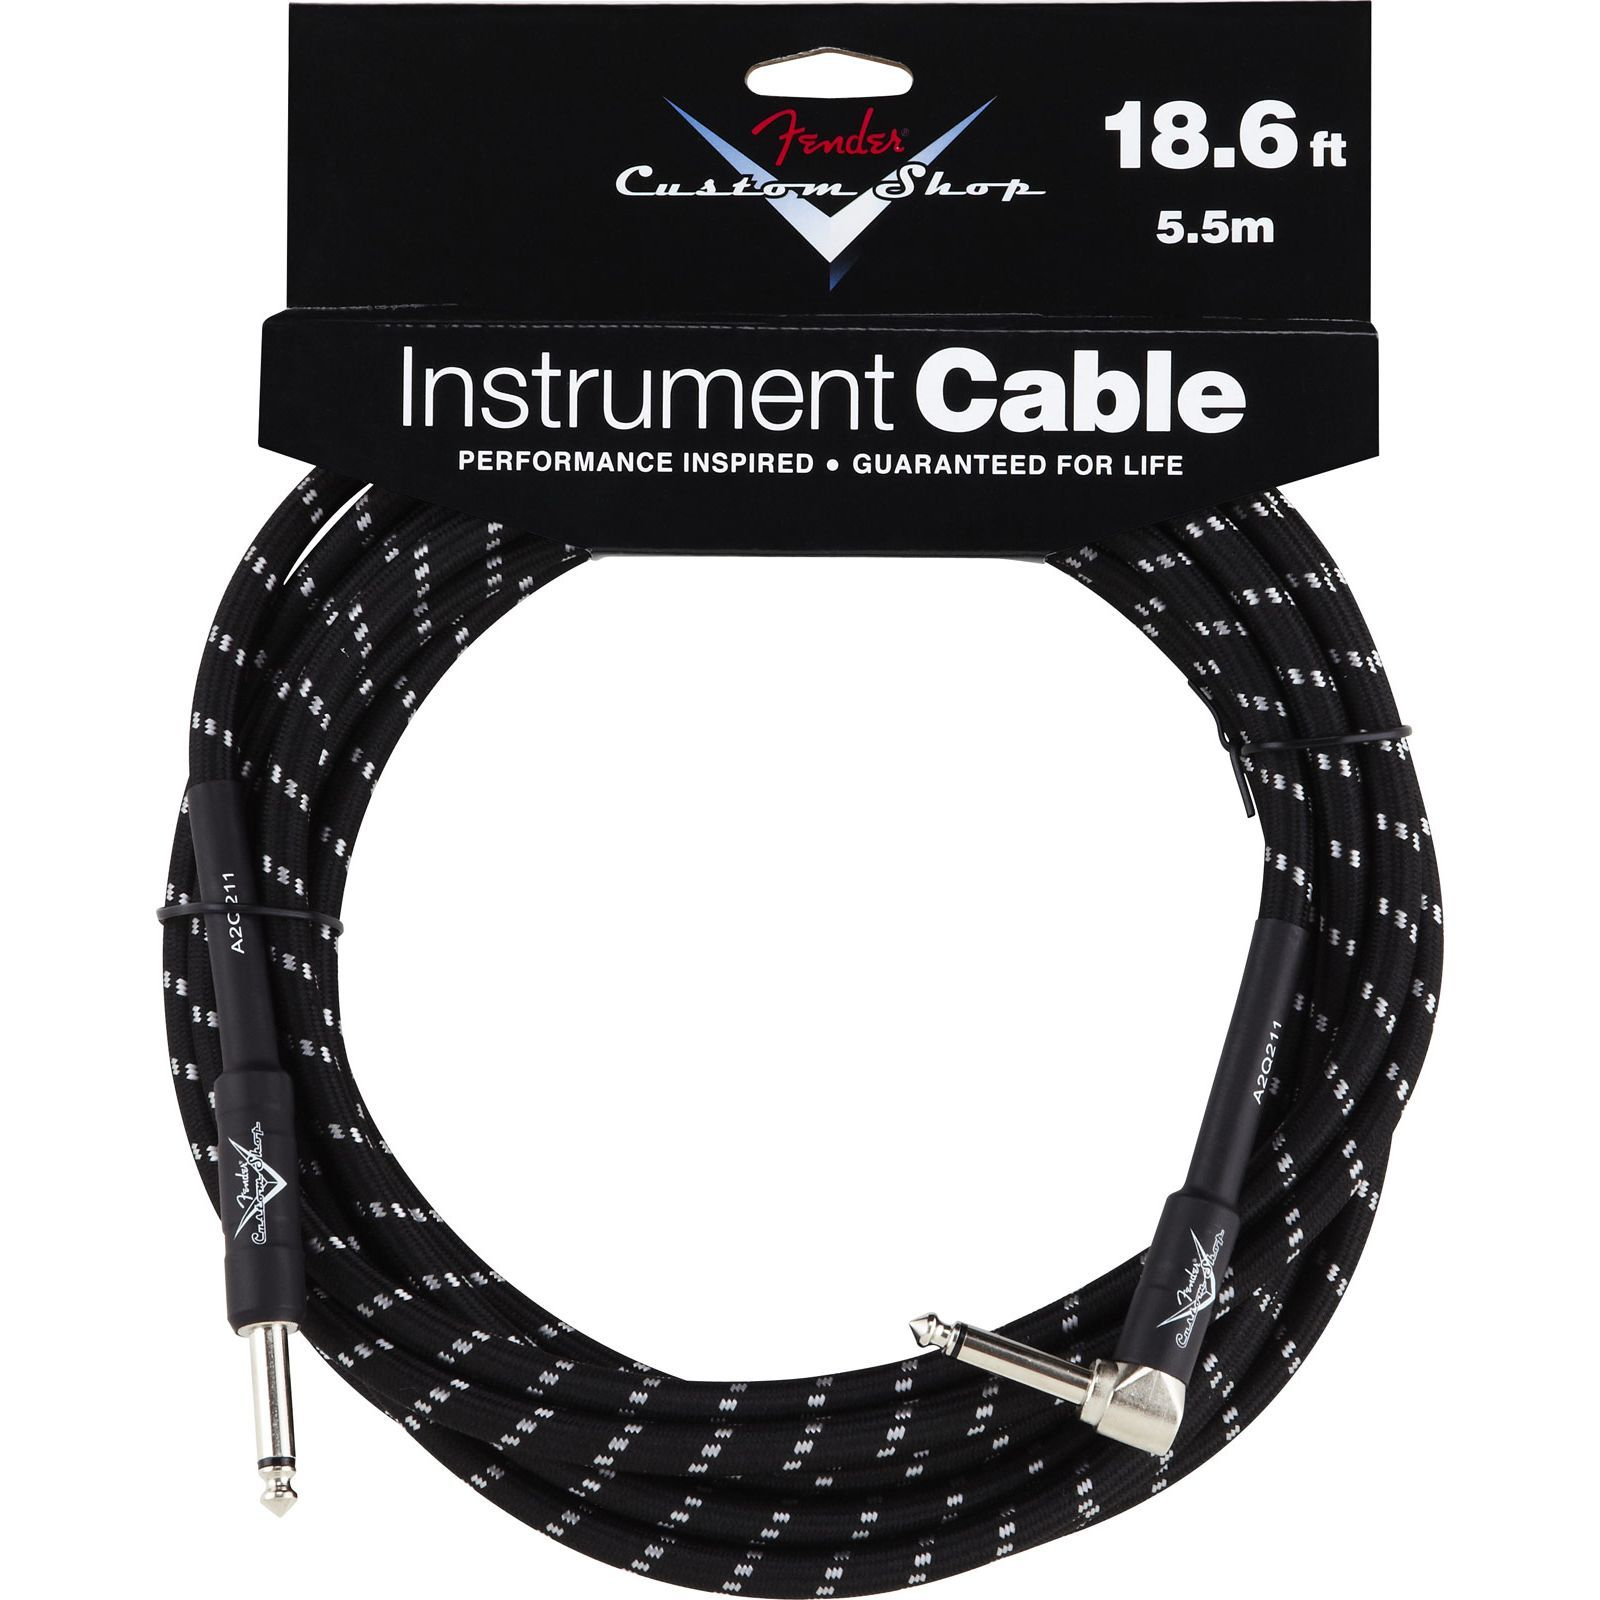 Fender Custom Shop Cable 5,5m BTW Black Tweed, Kli/WKli Produktbild